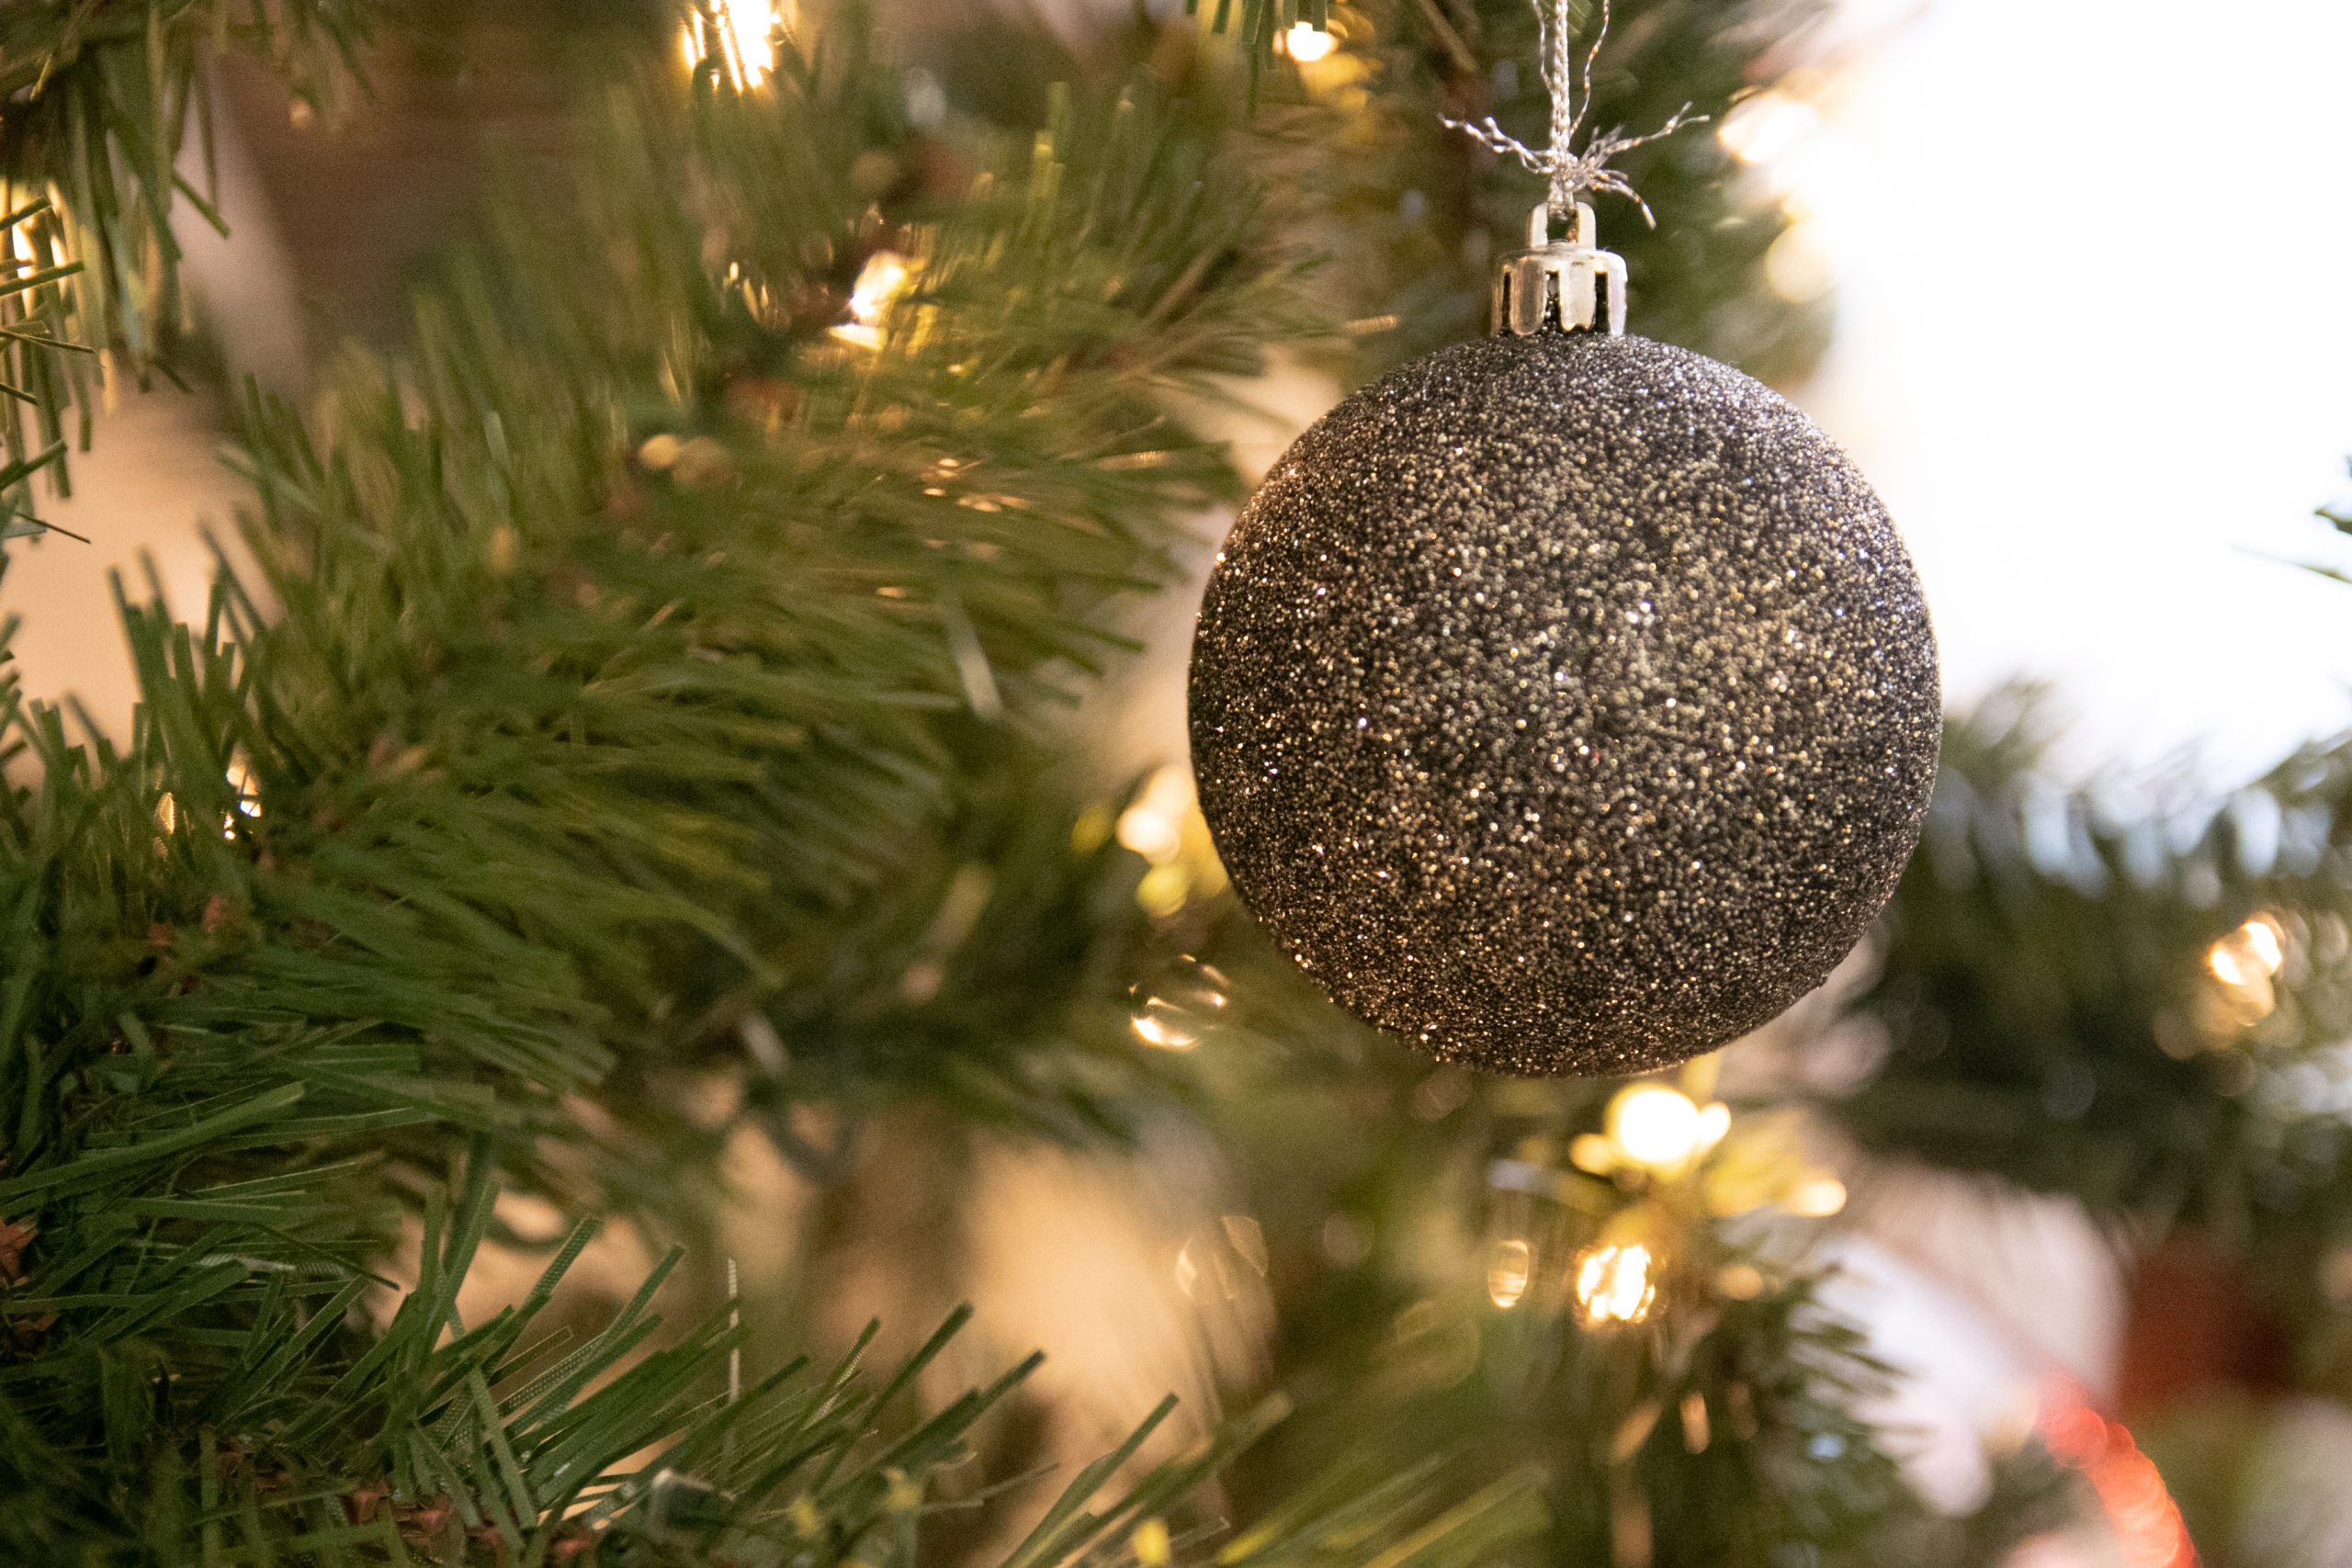 Silver Glitter Bauble Ornament Hanging From Pine Tree